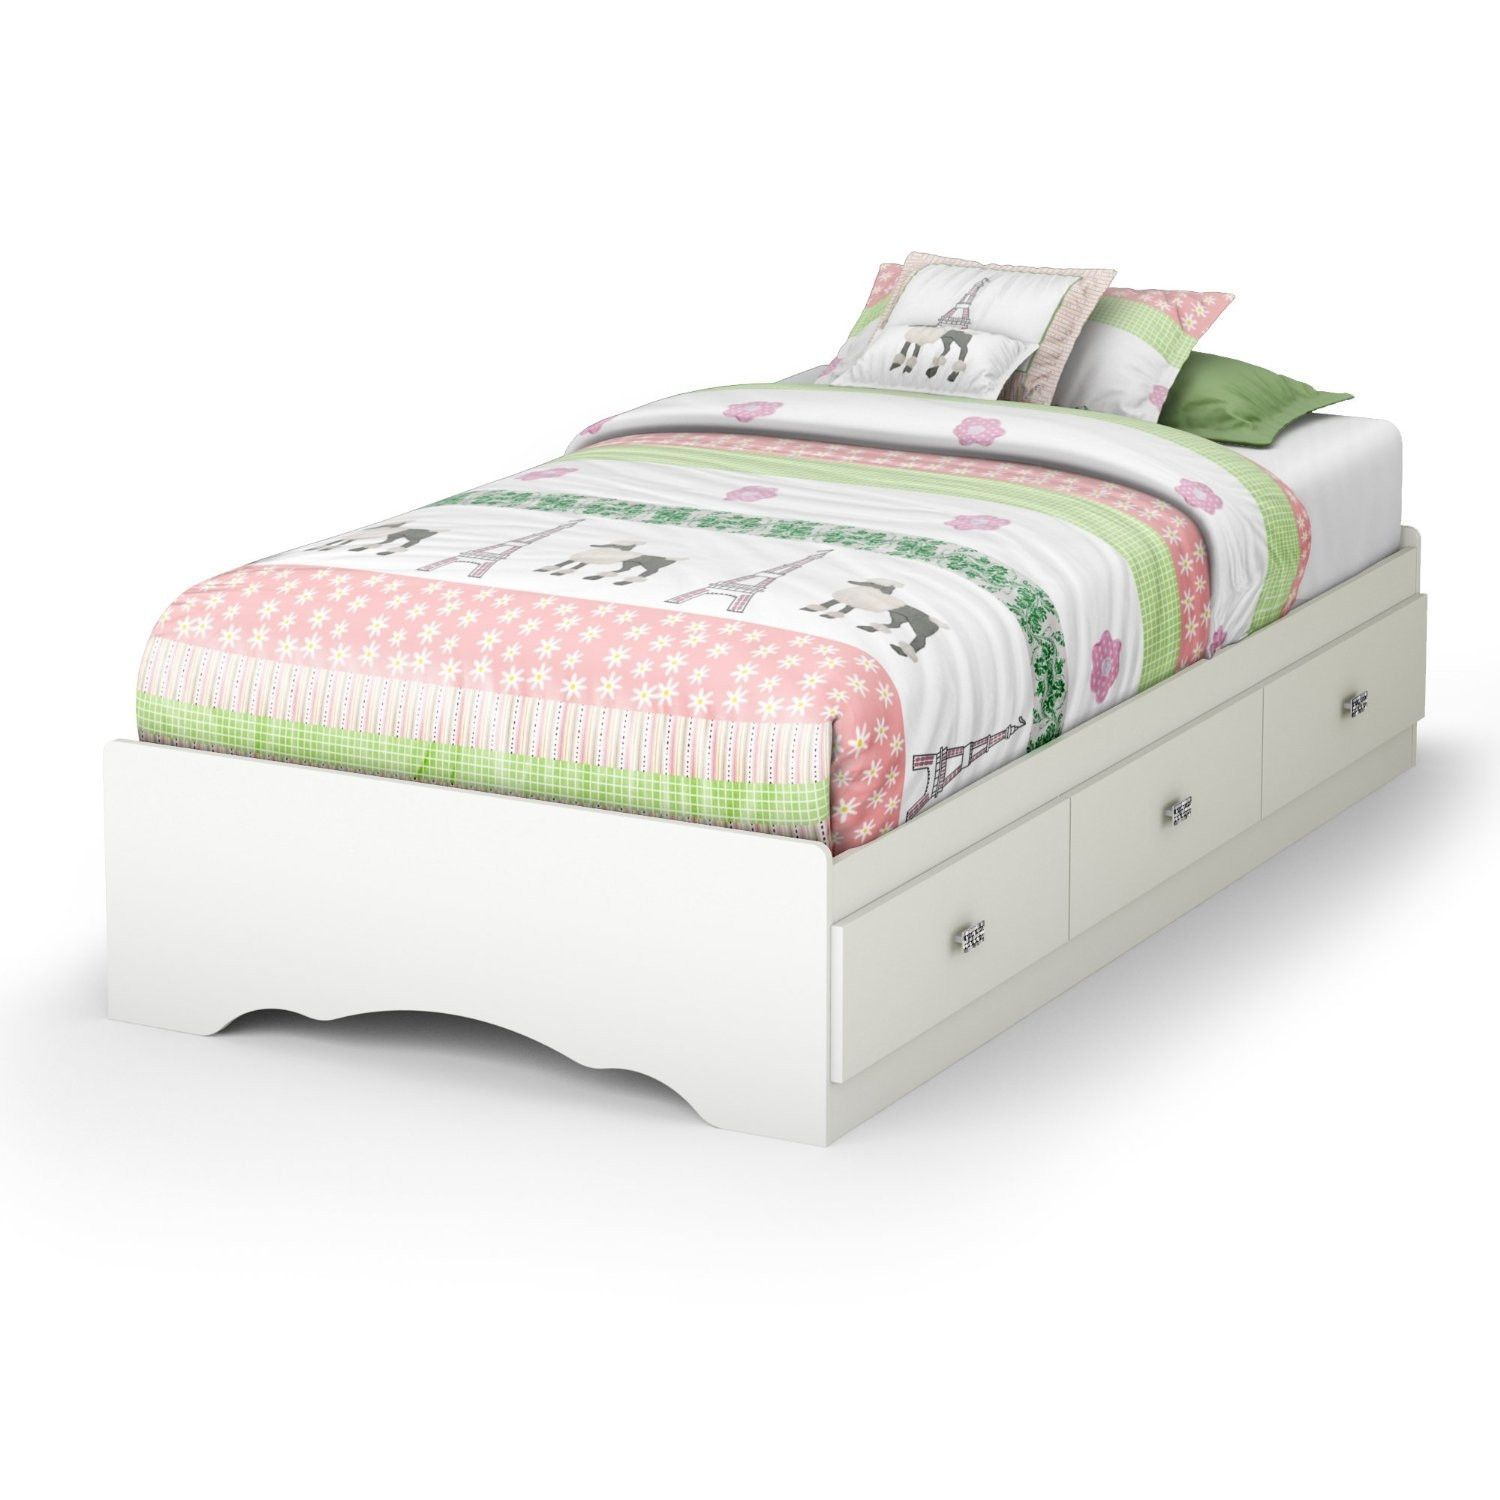 Twin size White Platform Bed Frame with 3 Storage Drawers ...